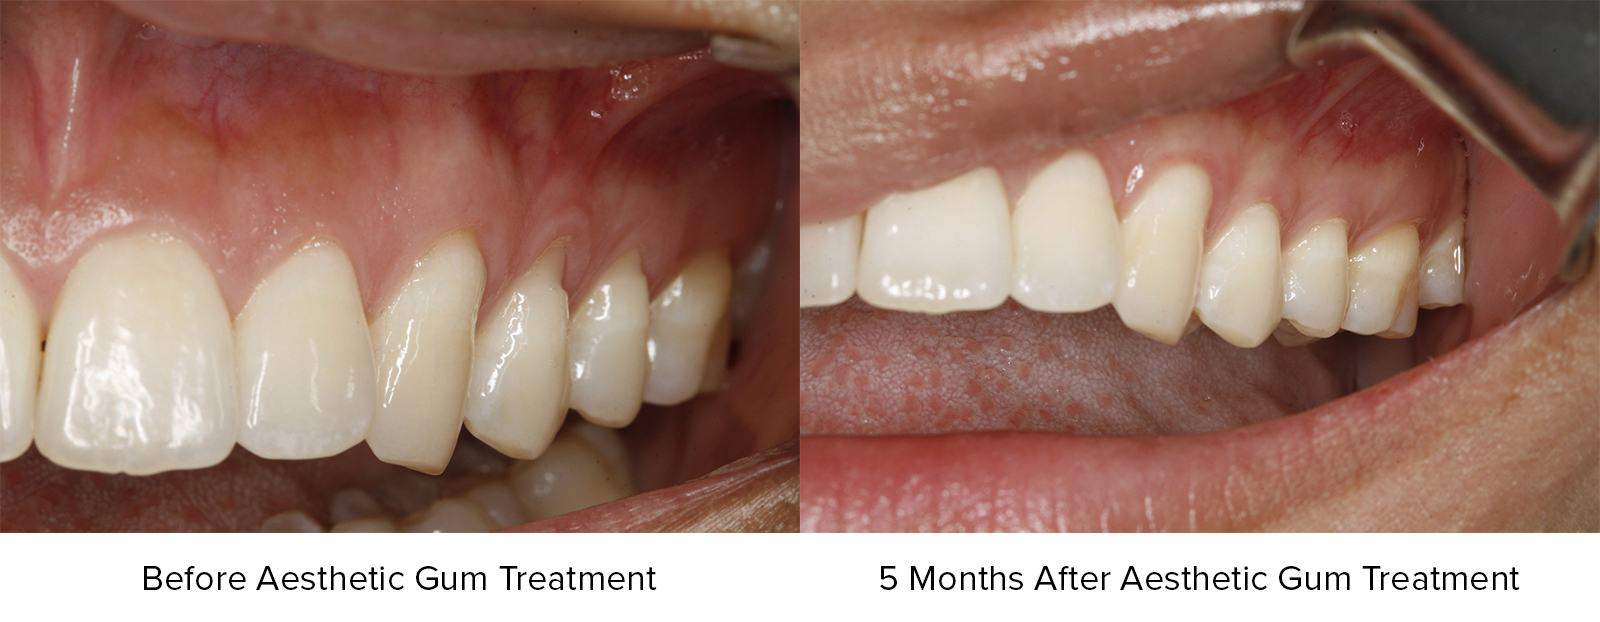 Before Aesthetic Gum Treatment and 5 Months After Aesthetic Gum Treatment Photos